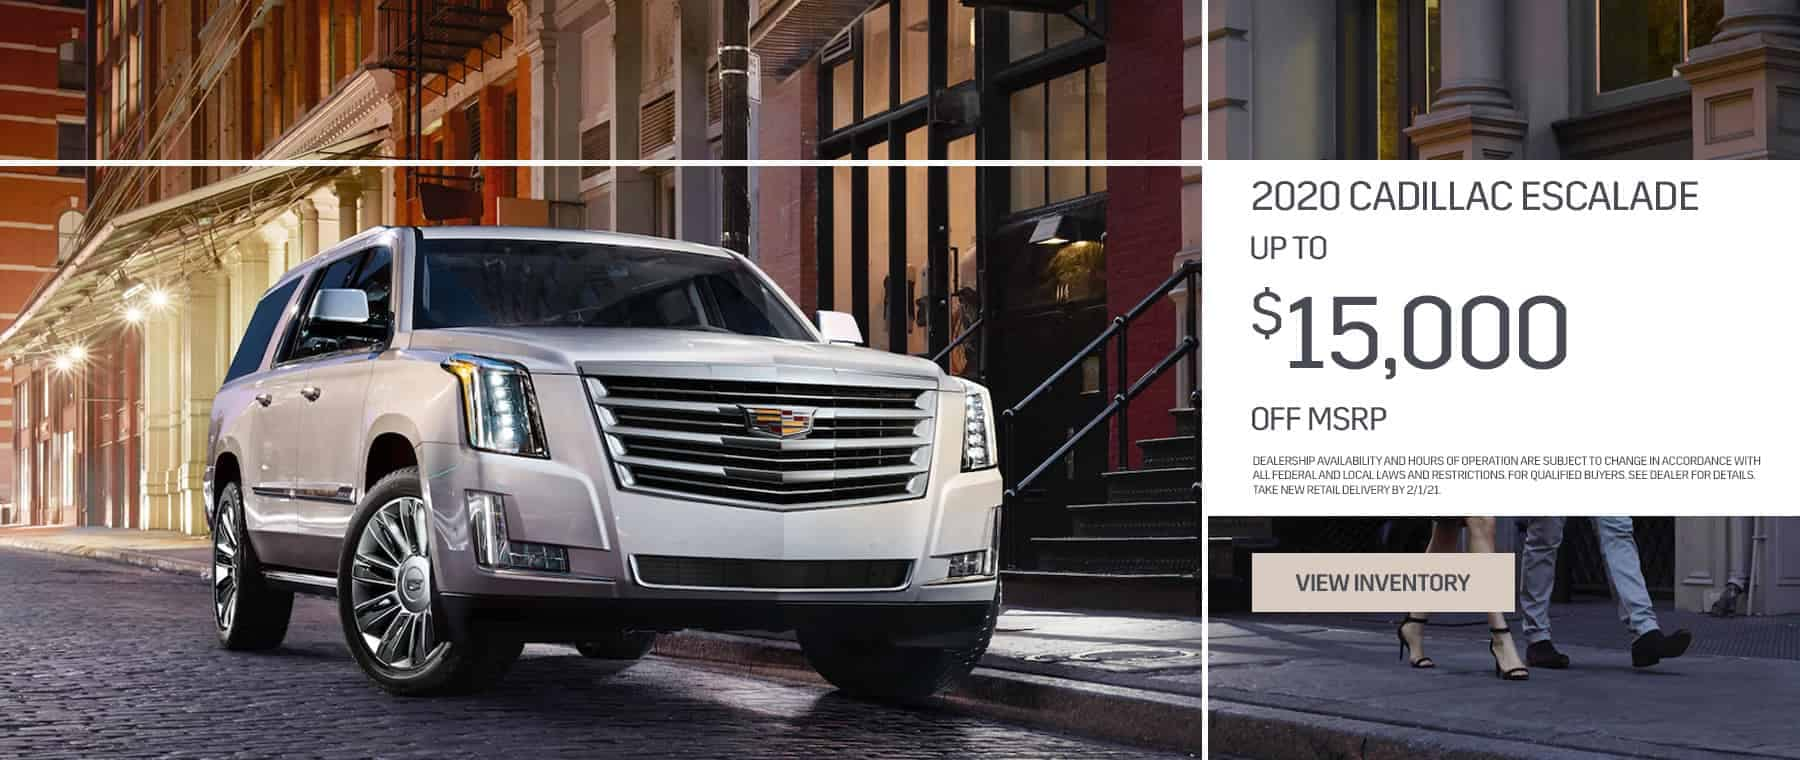 New Escalade up to $15,000 off msrp